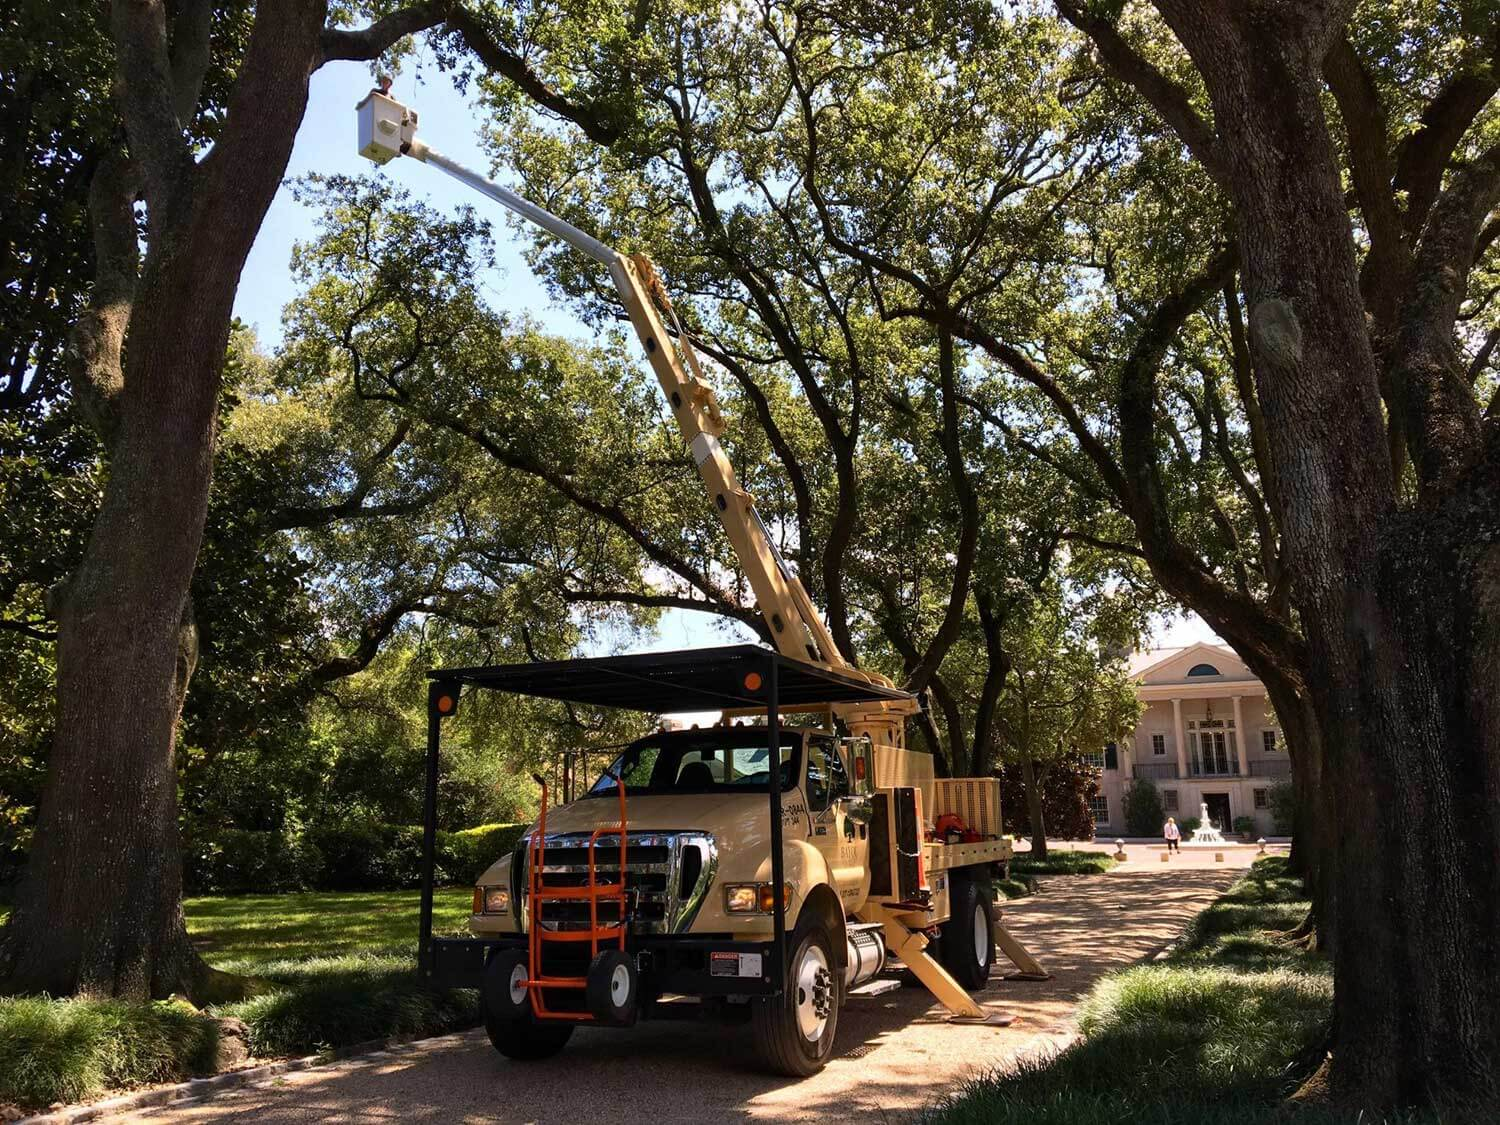 Commercial Tree Service-Daytona Beach's Best Tree Trimming and Tree Removal Services-We Offer Tree Trimming Services, Tree Removal, Tree Pruning, Tree Cutting, Residential and Commercial Tree Trimming Services, Storm Damage, Emergency Tree Removal, Land Clearing, Tree Companies, Tree Care Service, Stump Grinding, and we're the Best Tree Trimming Company Near You Guaranteed!